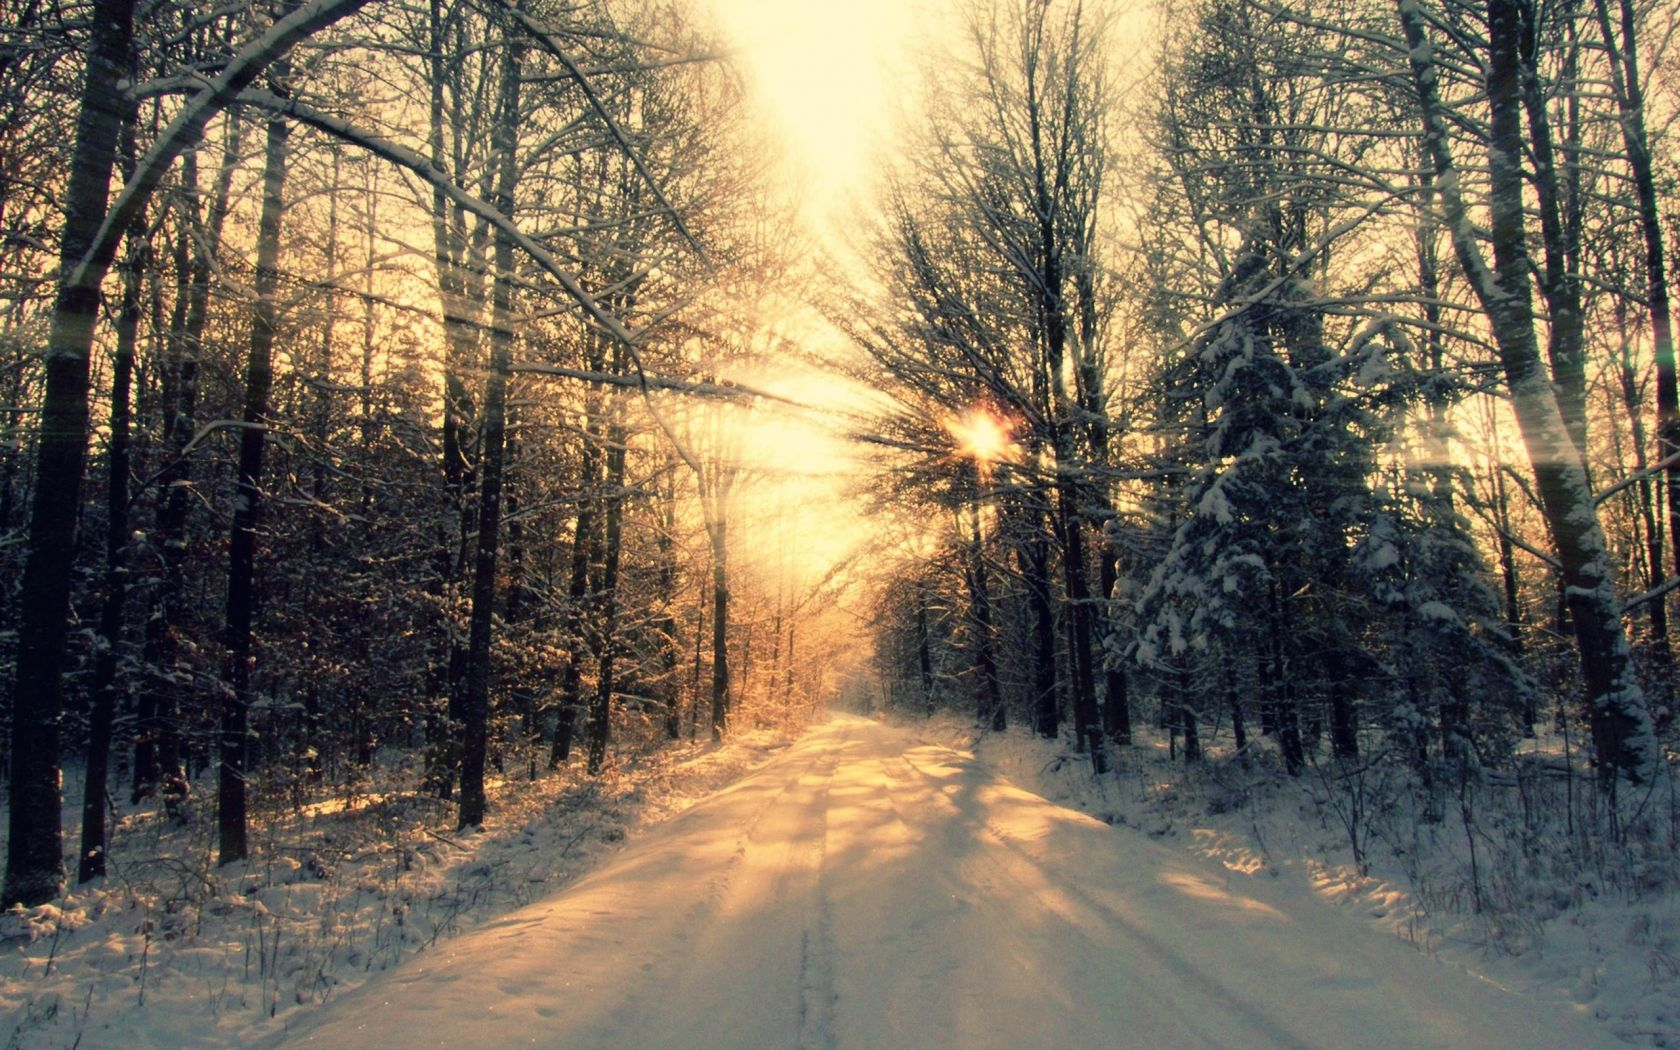 Winter Wallpaper Tumblr | Forest wallpaper, Winter ...